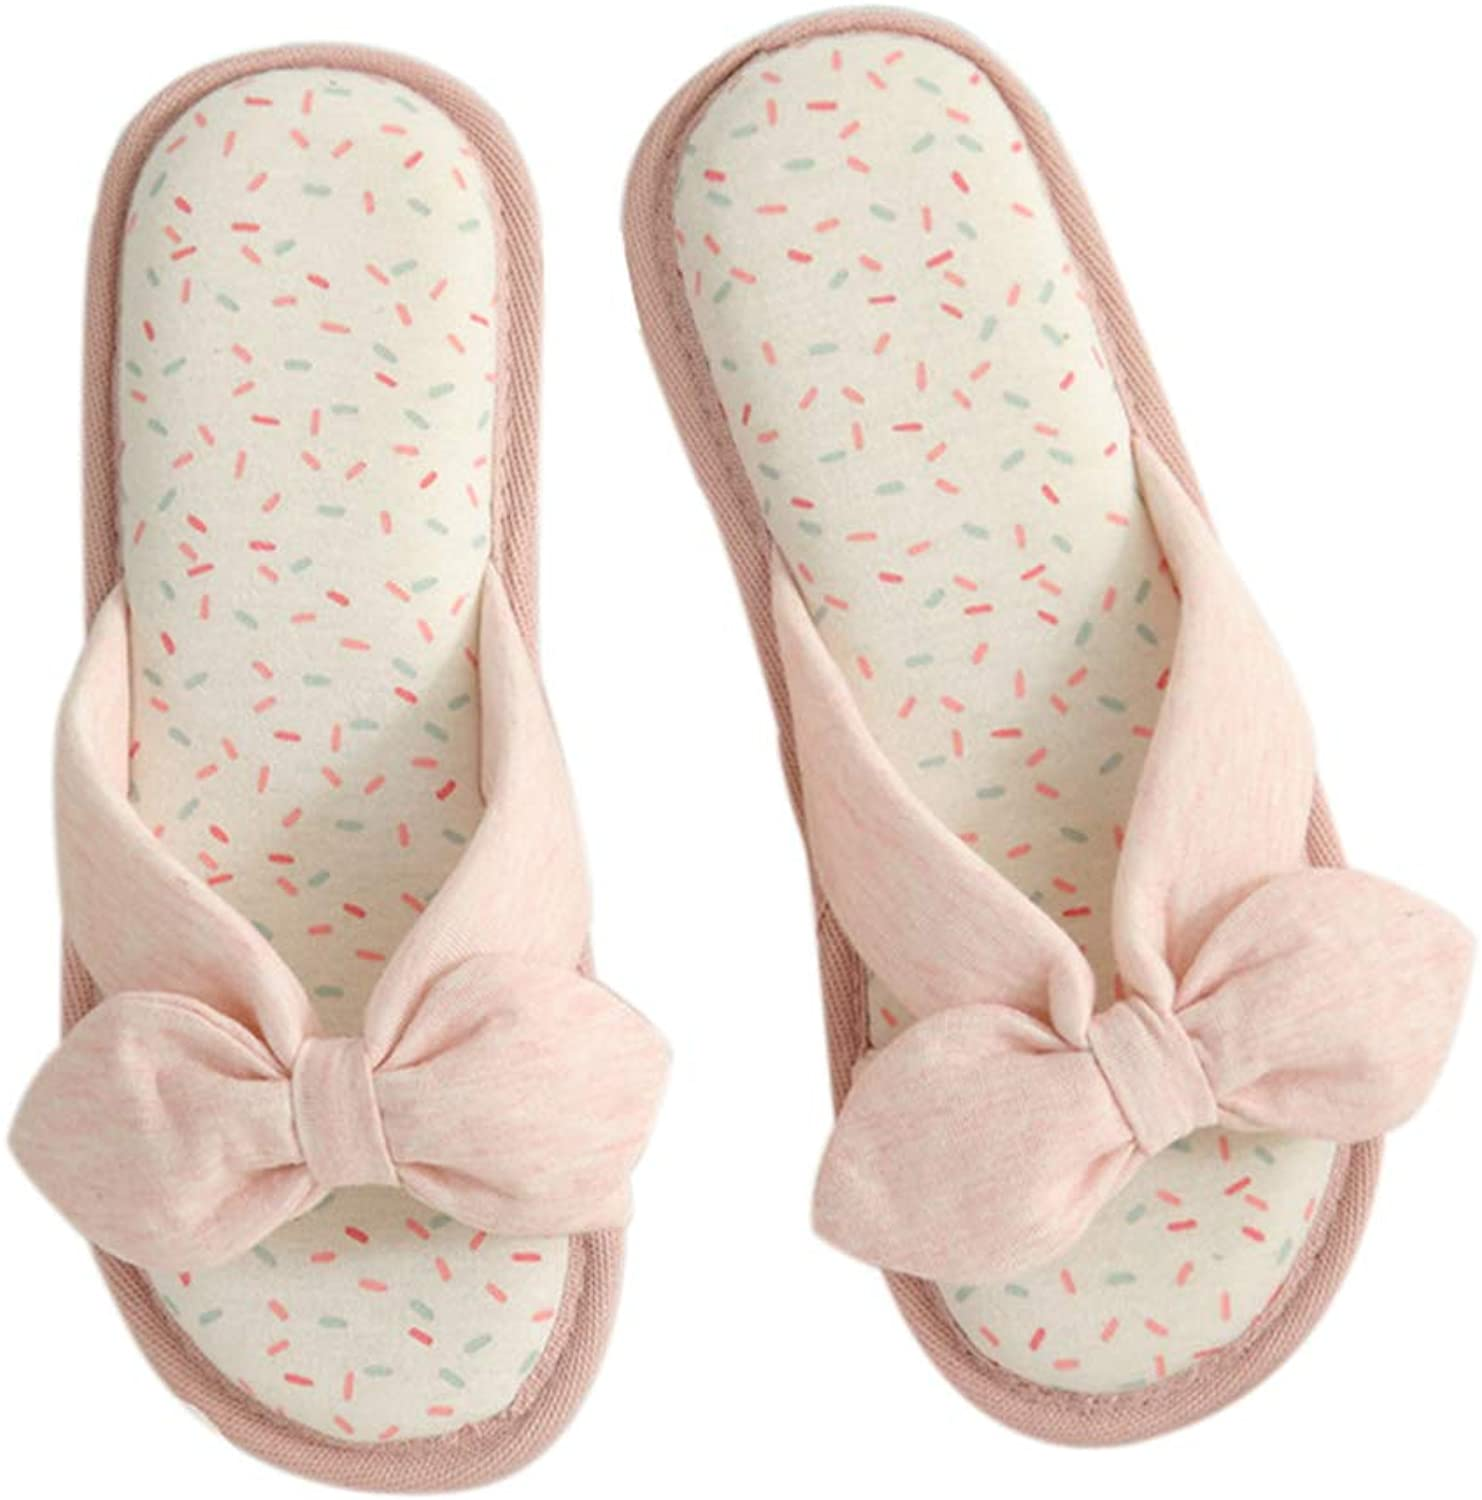 Autumn Cotton Slippers shoes Open Toe Women Bow Slides Cute Non-Slip Breathable Home House Indoor Flats